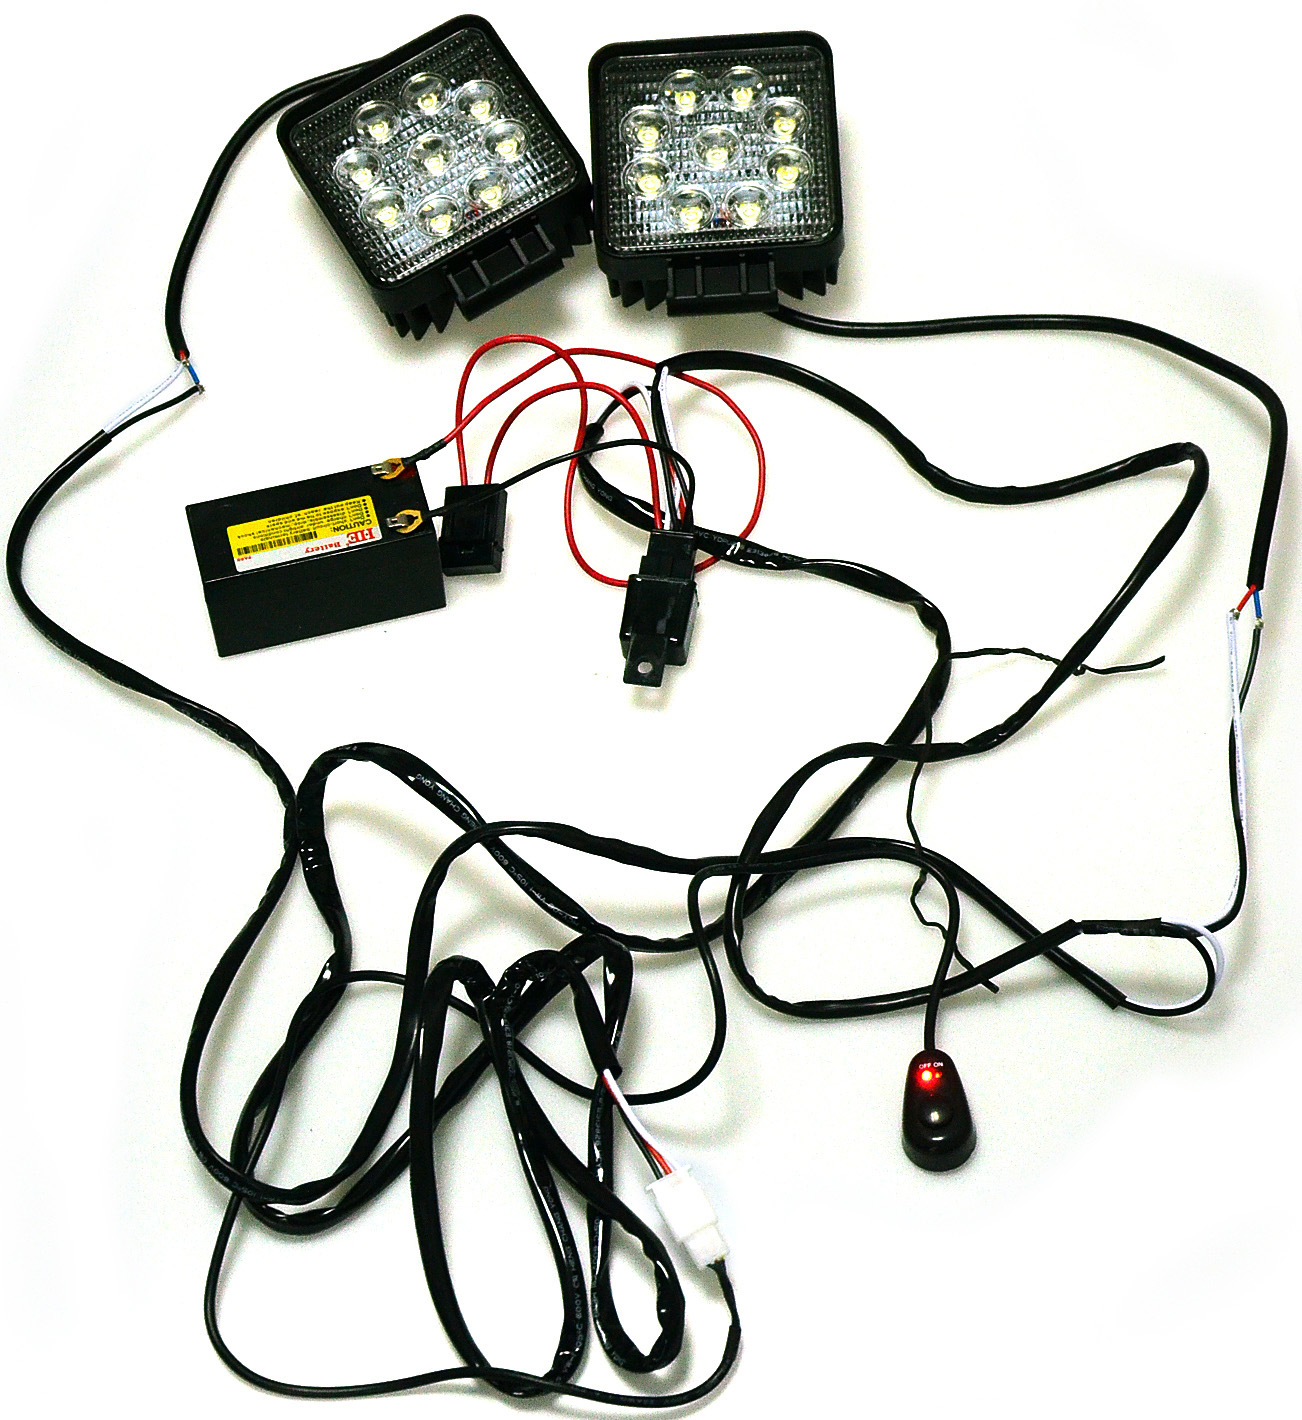 Kawell® 2 leg wiring harness include switch kit support 120w led light wiring harness and